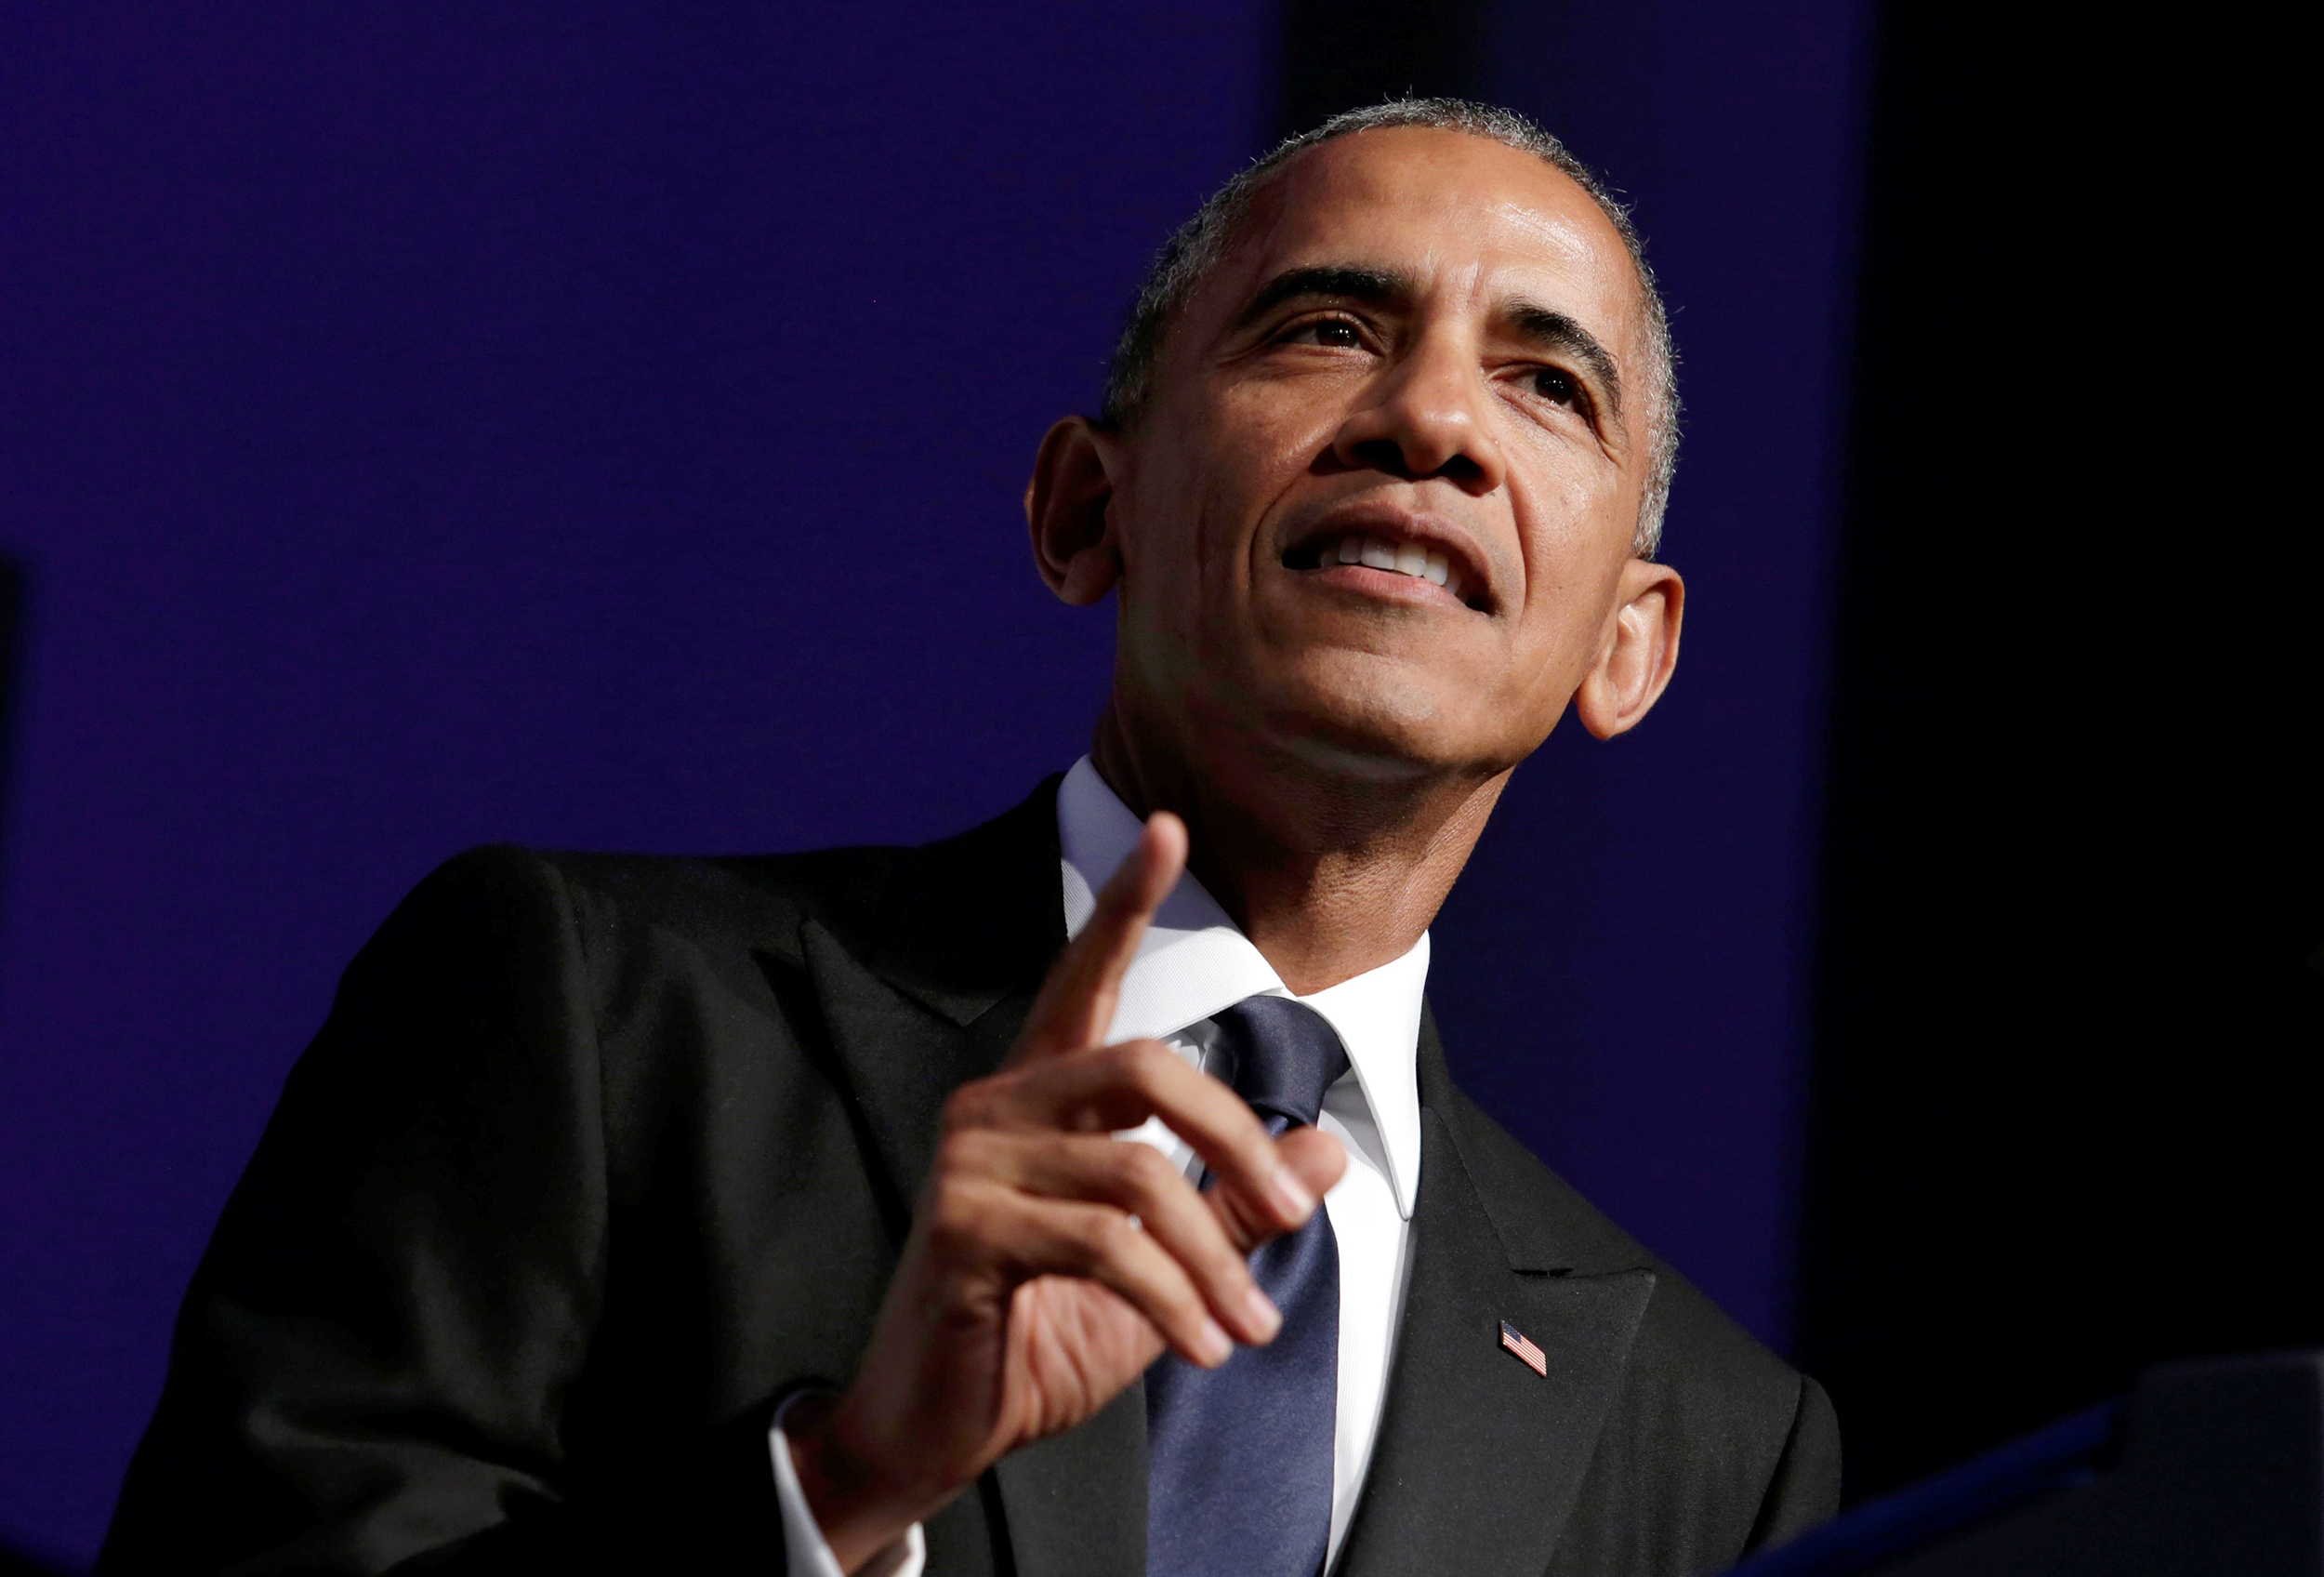 Virginia school to be renamed to honor Obama